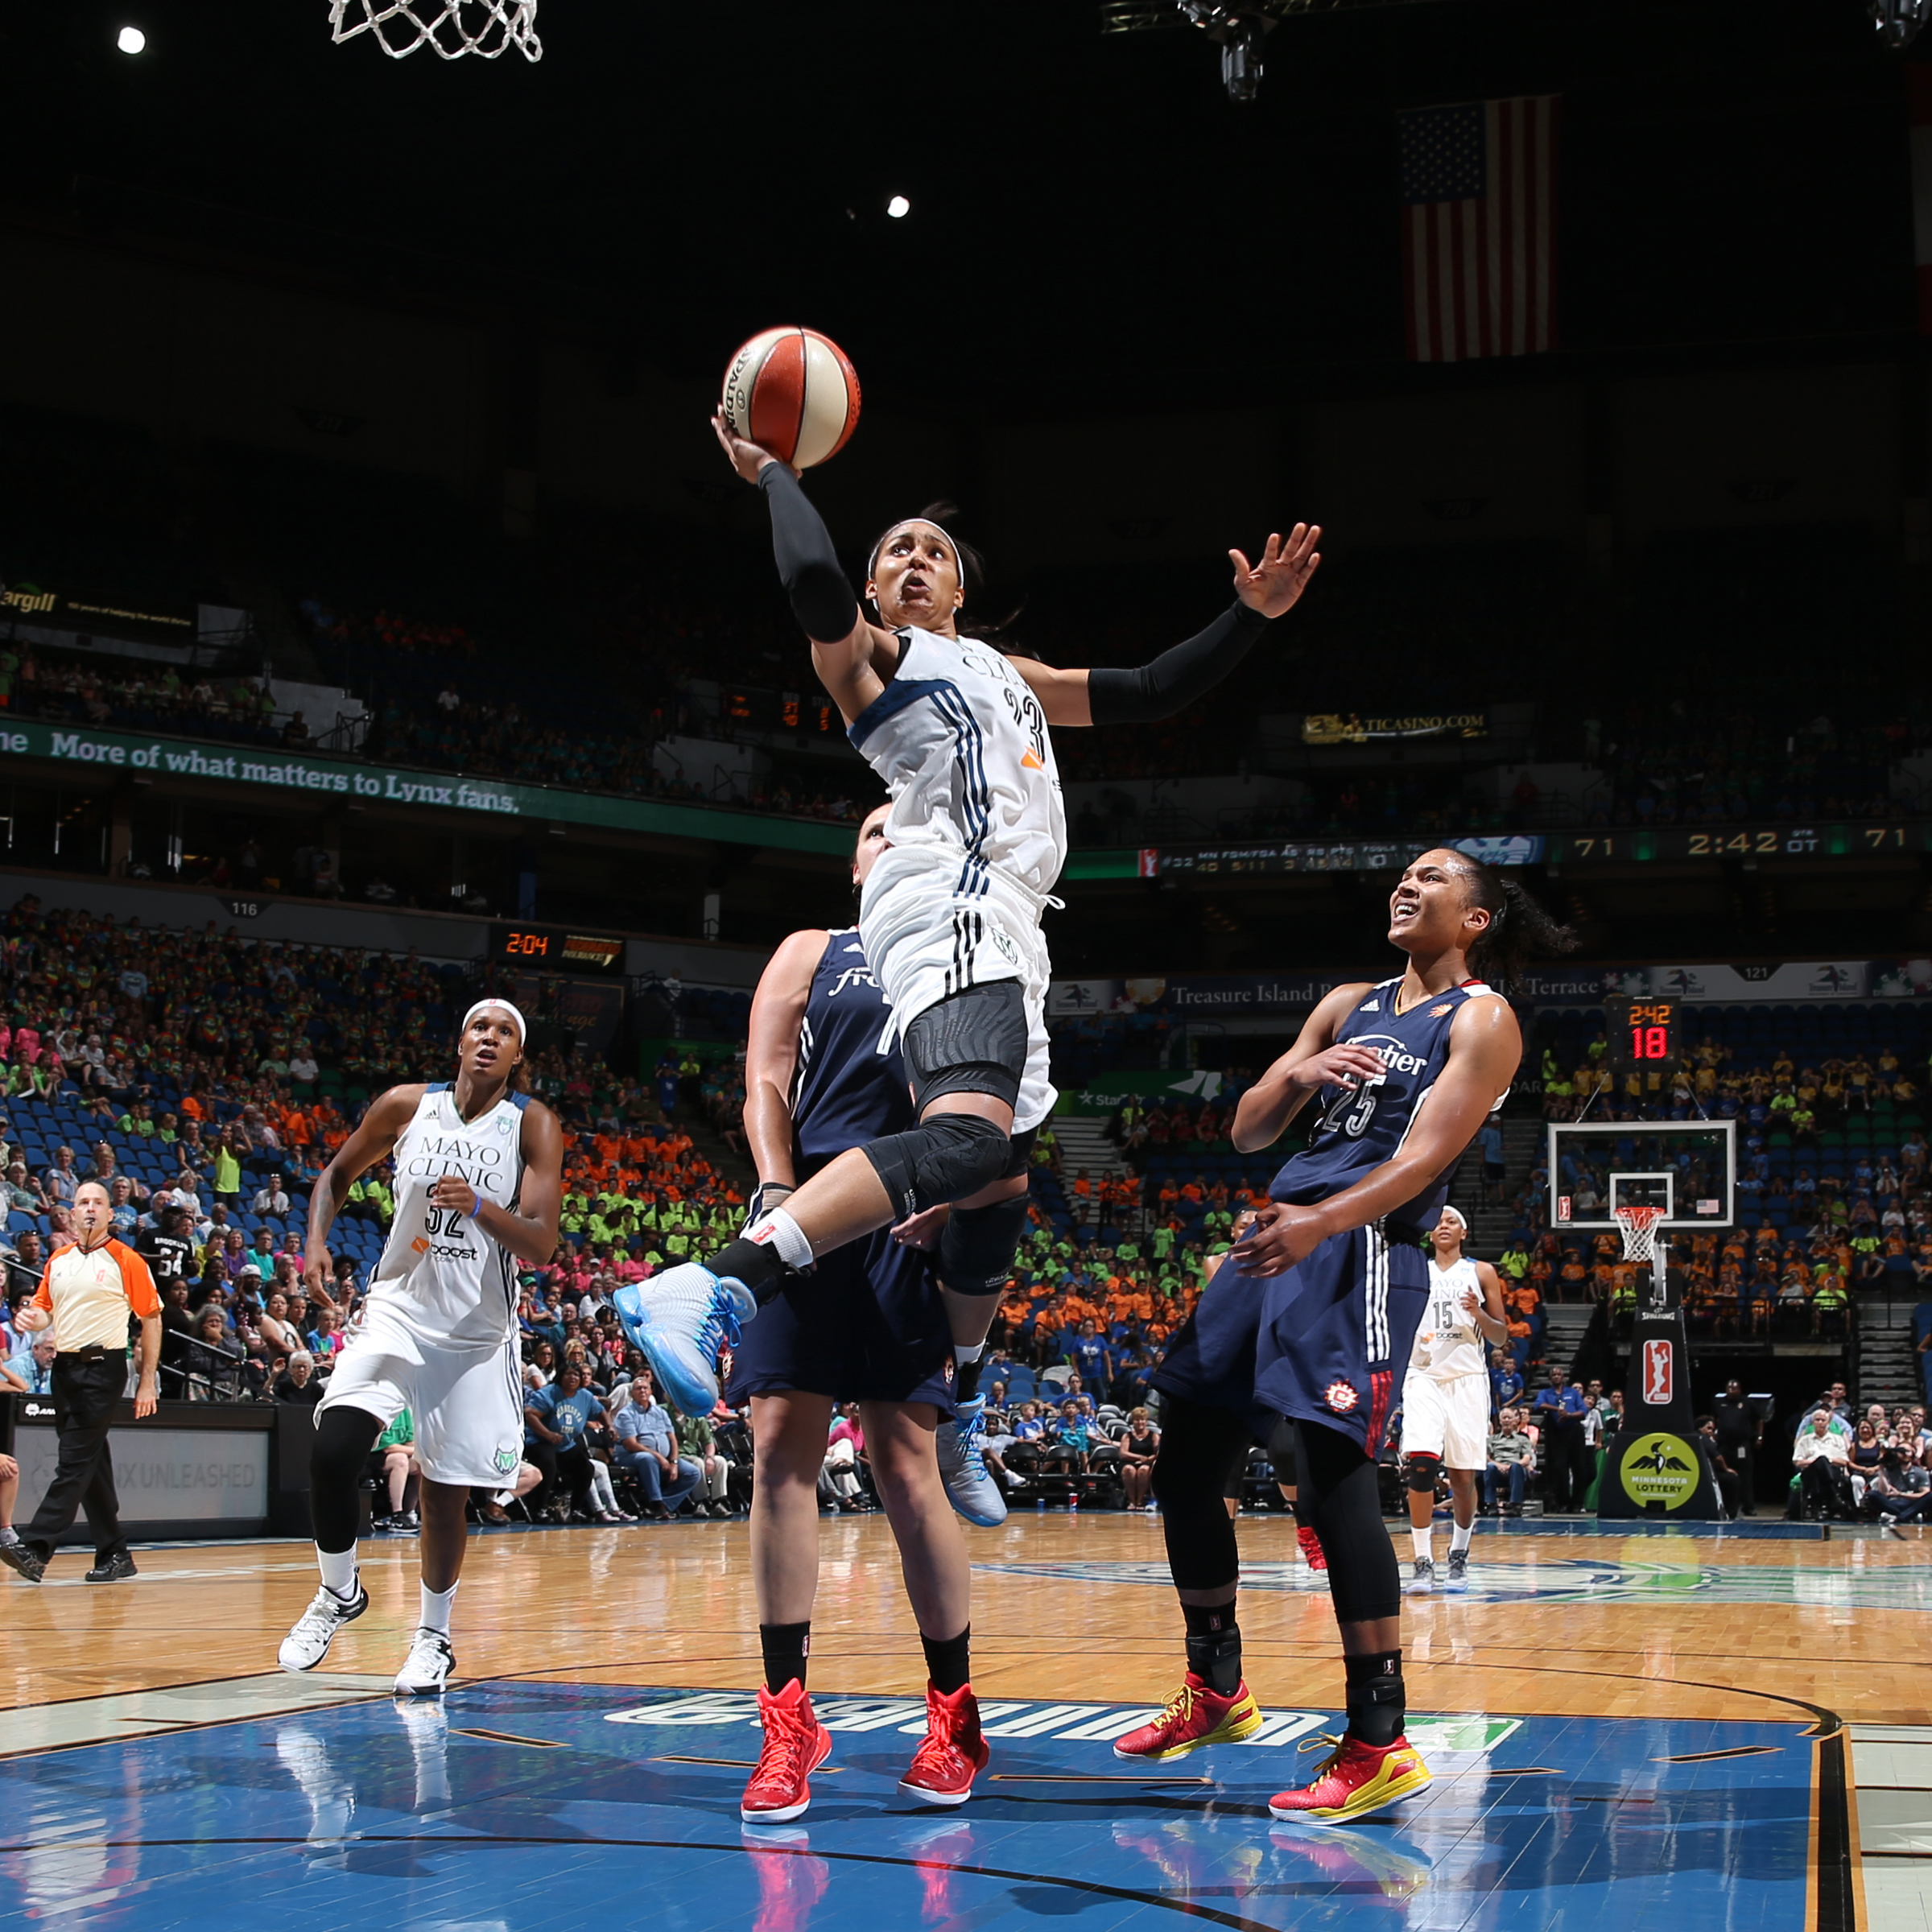 MINNEAPOLIS, MN - JULY 22: Maya Moore #23 of the Minnesota Lynx shoots against the Connecticut Sun on July 22, 2015 at Target Center in Minneapolis, Minnesota. NOTE TO USER: User expressly acknowledges and agrees that, by downloading and or using this Photograph, user is consenting to the terms and conditions of the Getty Images License Agreement. Mandatory Copyright Notice: Copyright 2015 NBAE (Photo by David Sherman/NBAE via Getty Images)